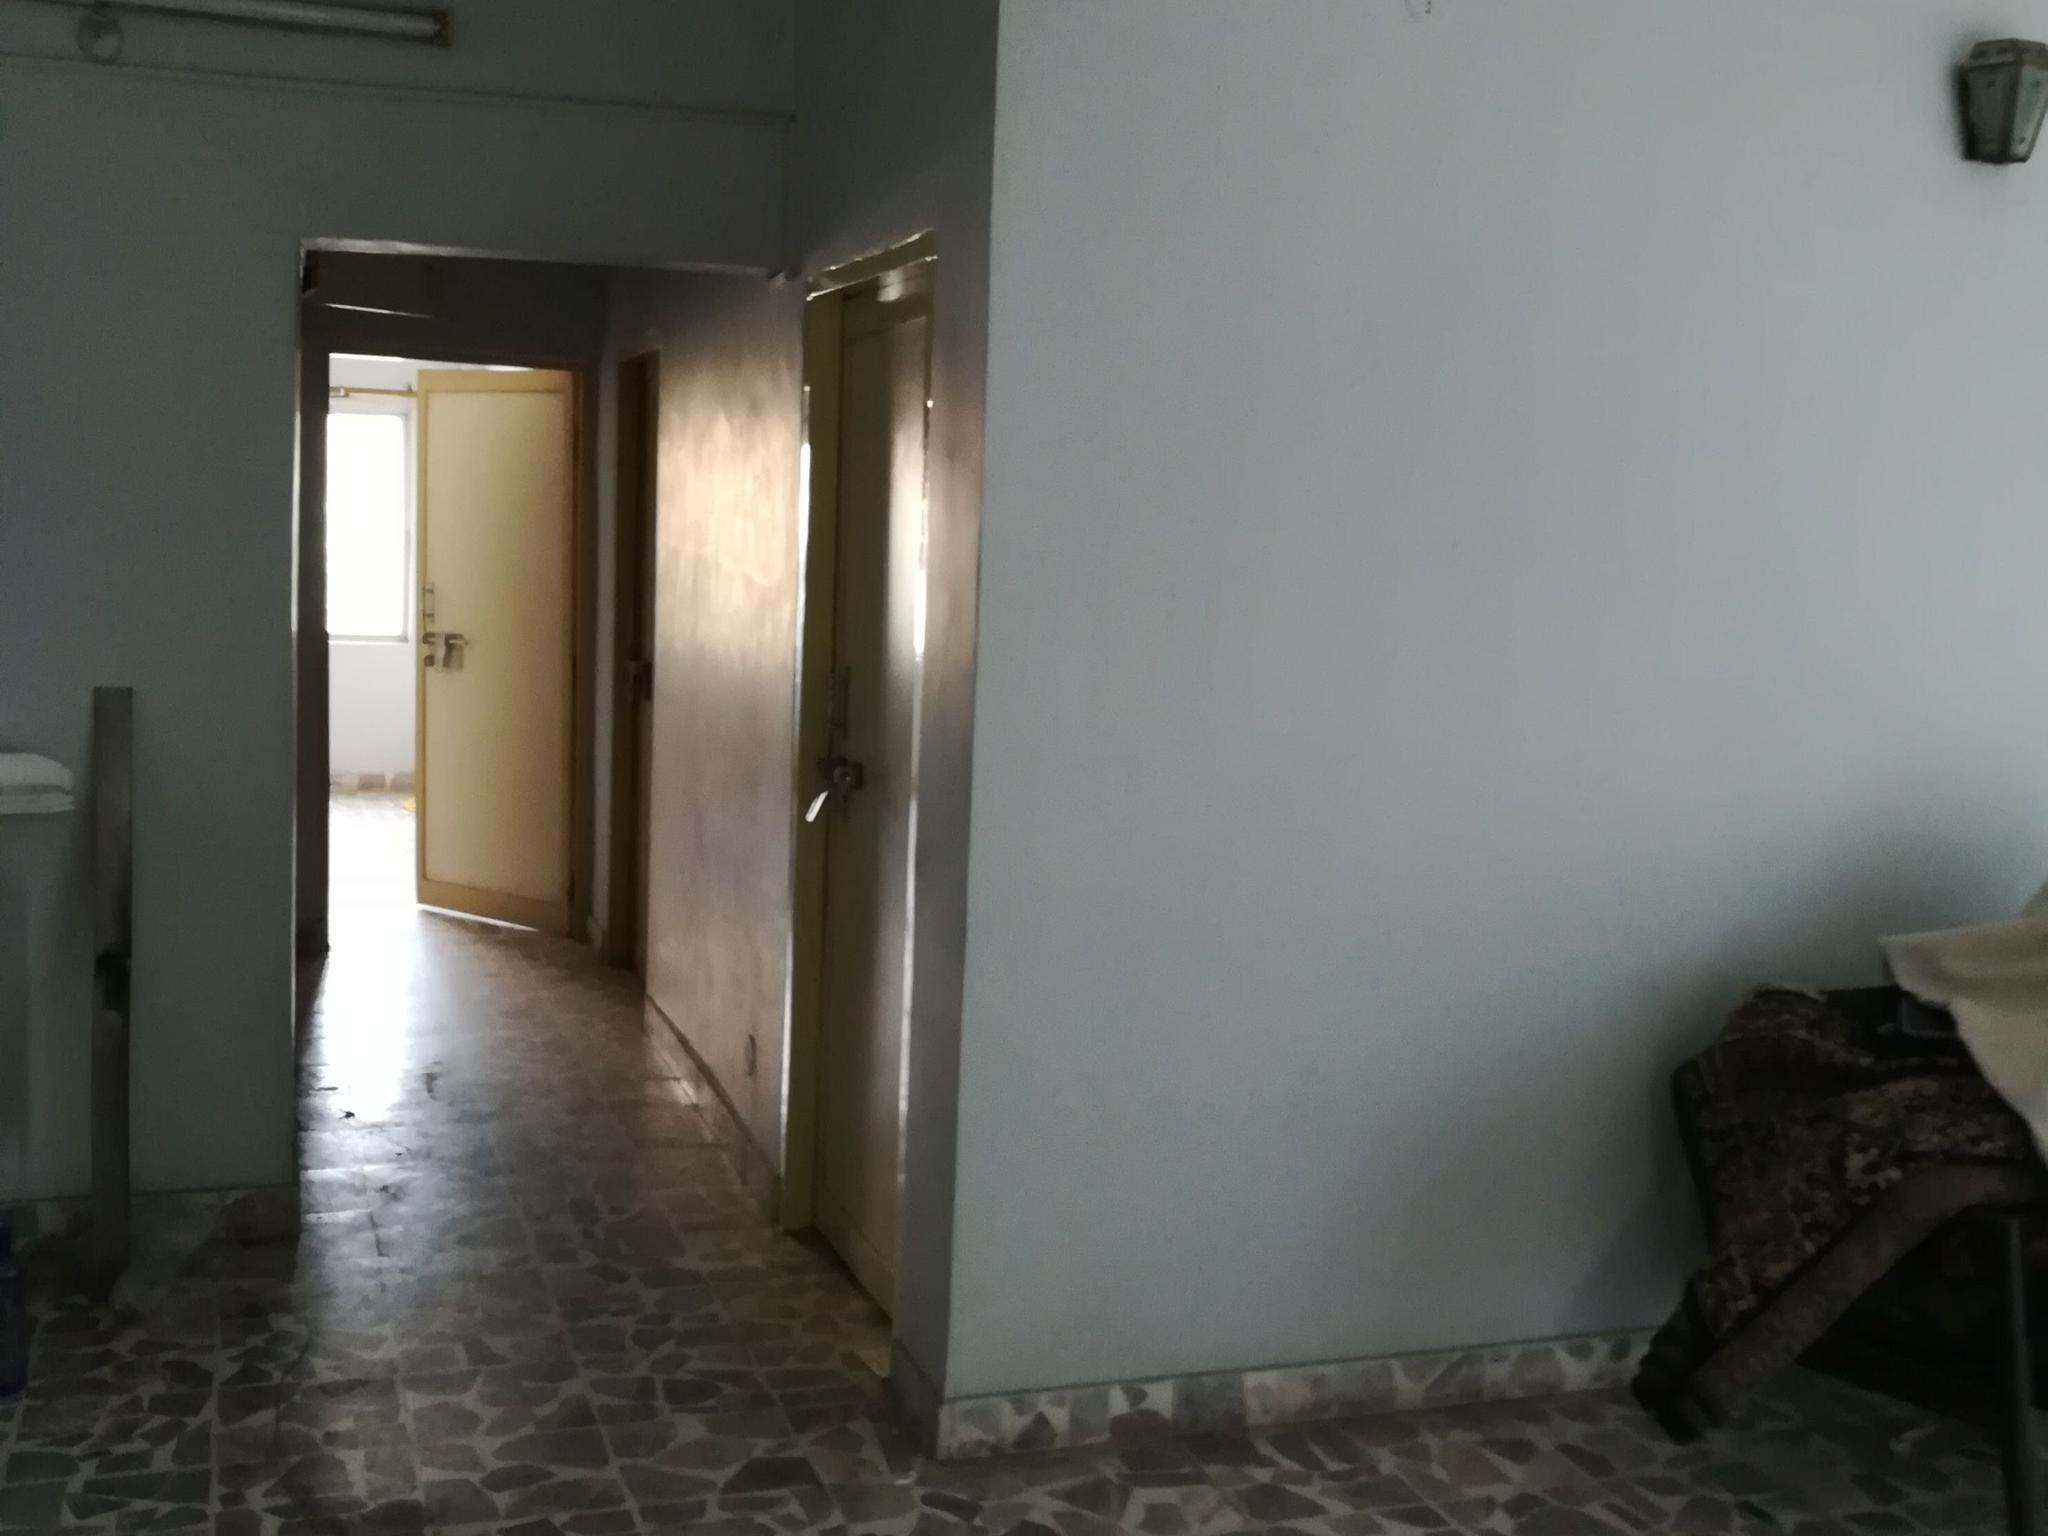 On 3rd floor 2bhk posh flat for rent 10000 at manish nagar